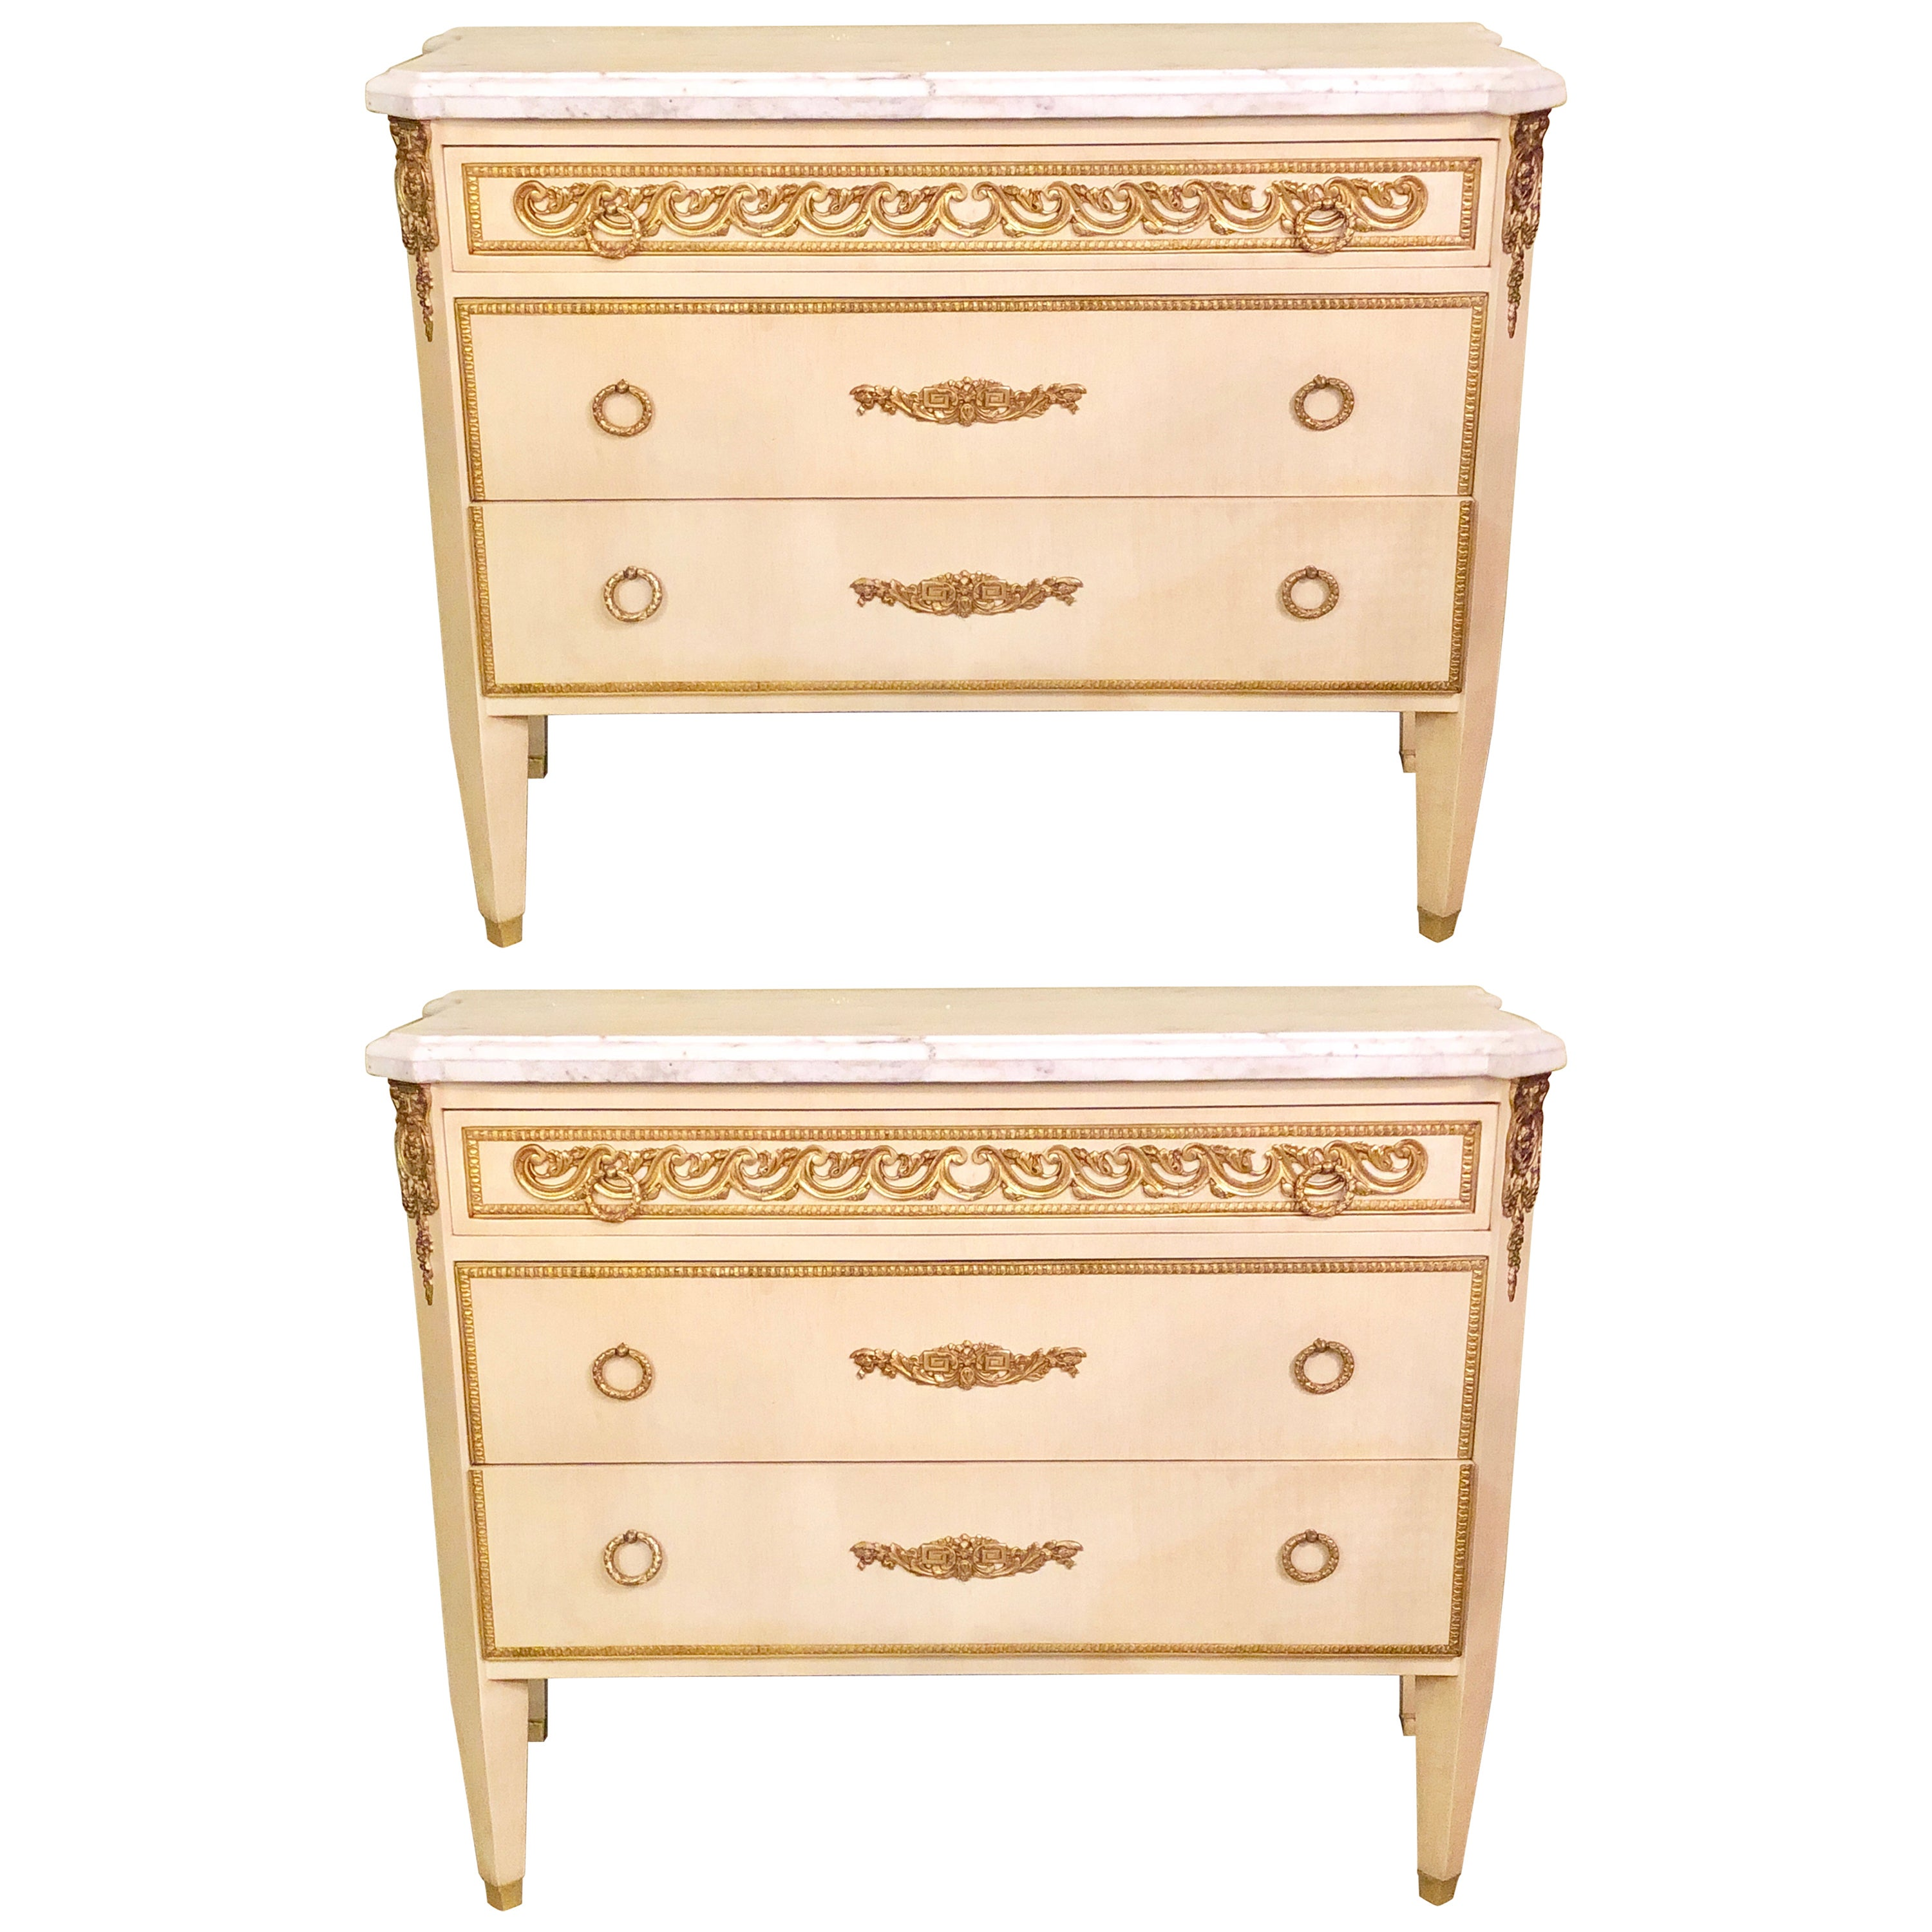 Hollywood Regency Maison Jansen Style Commodes or Nightstands a Pair